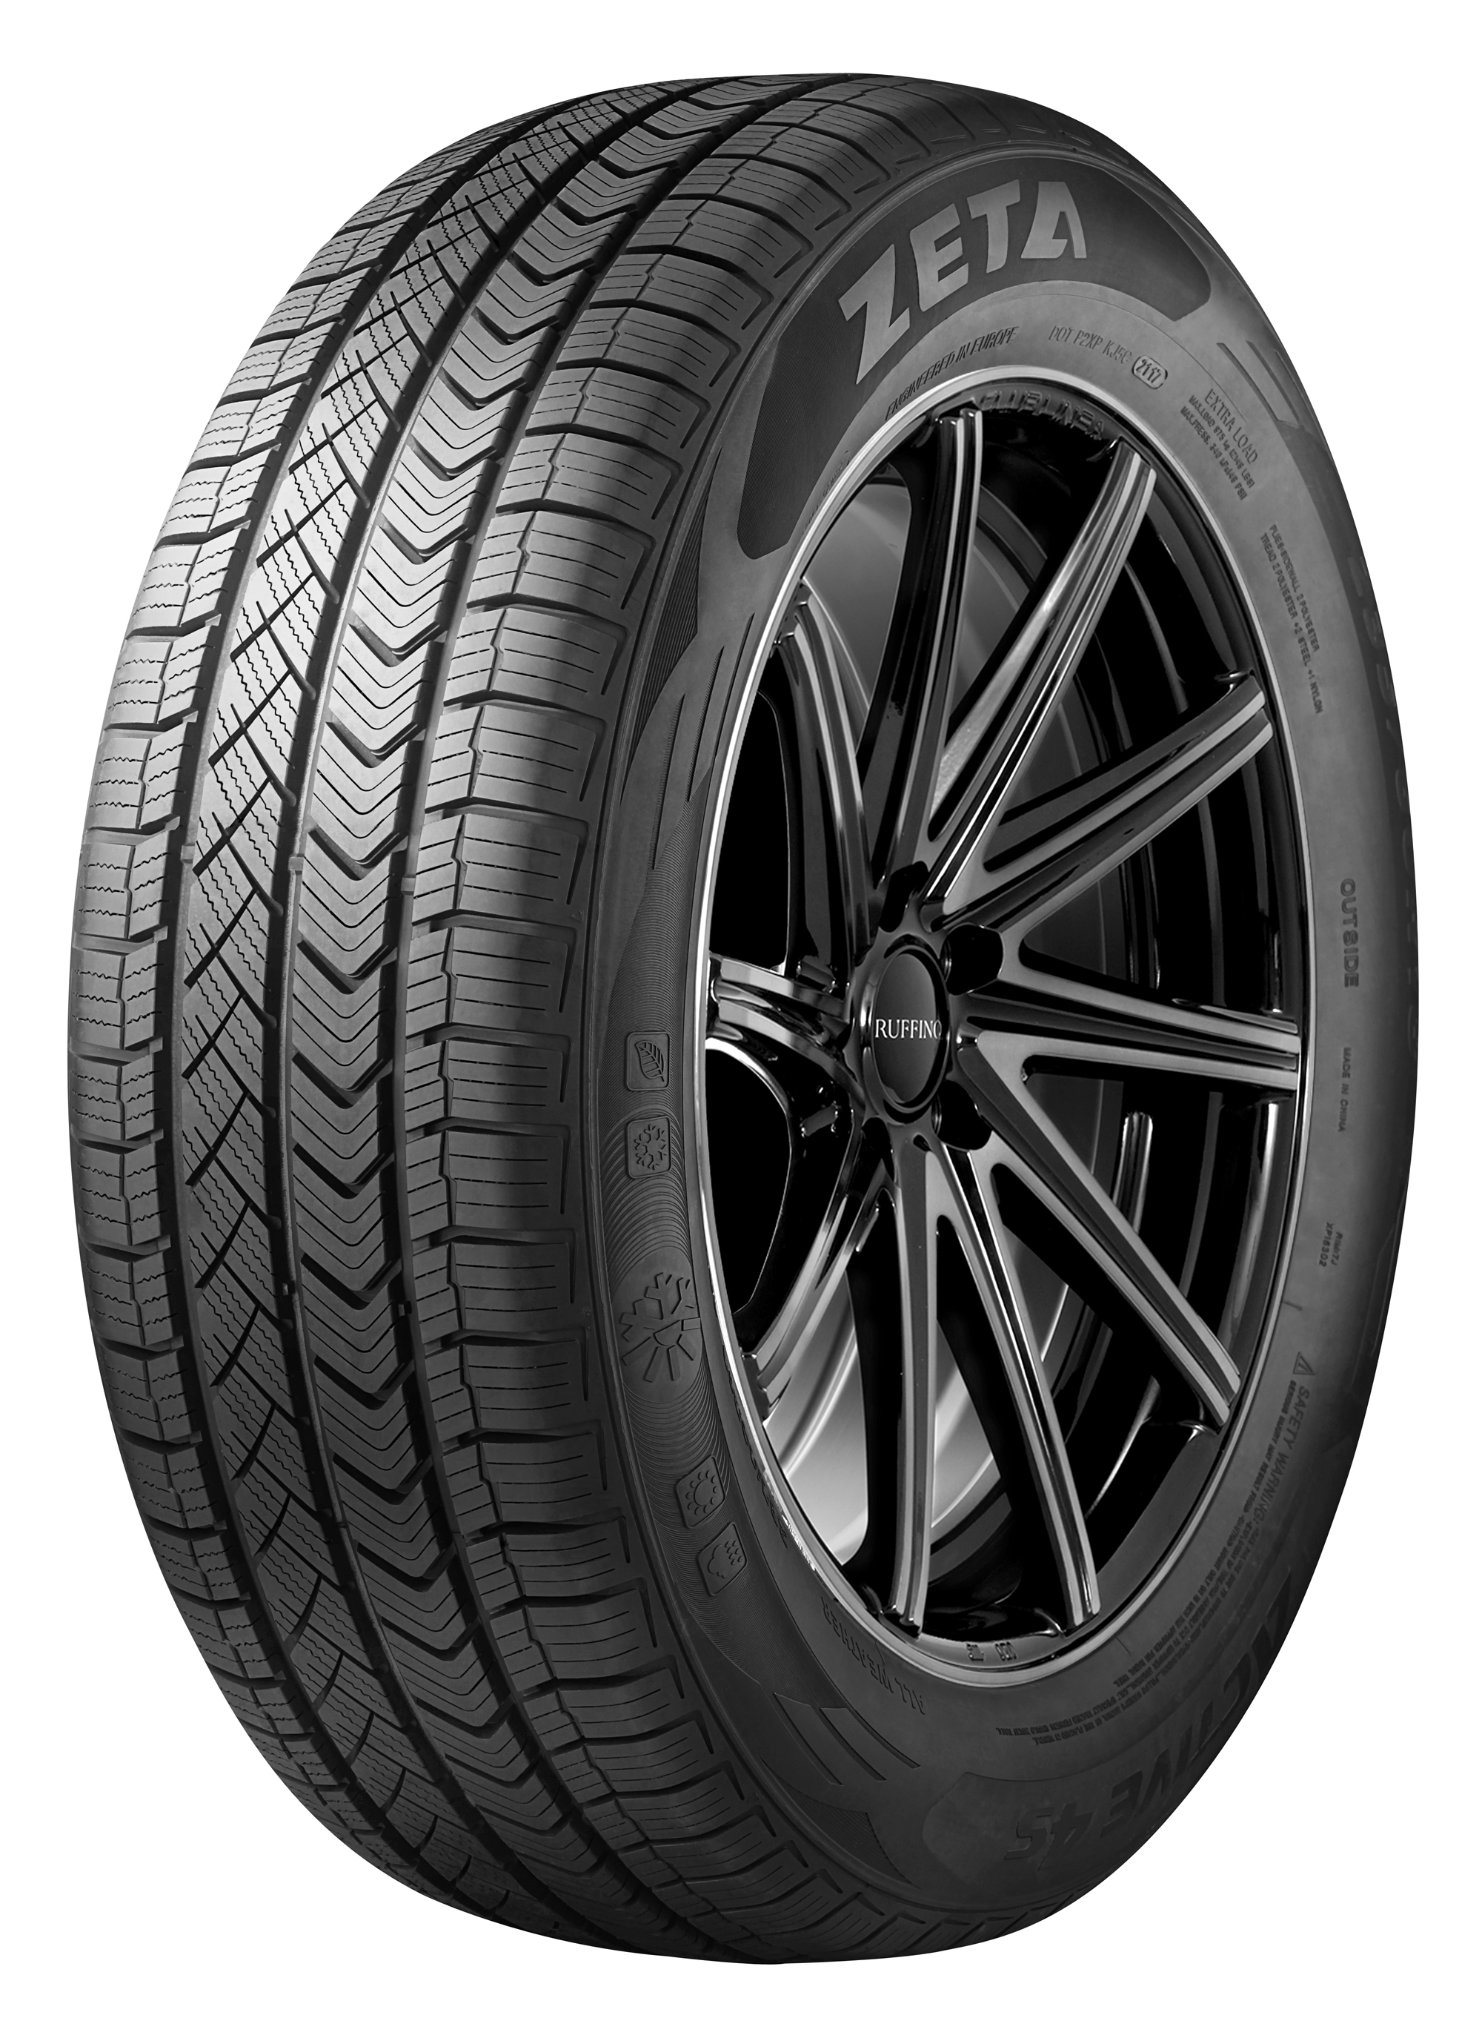 Anvelopa All Season Zeta Active Power 4s 225/65R16C 112 S